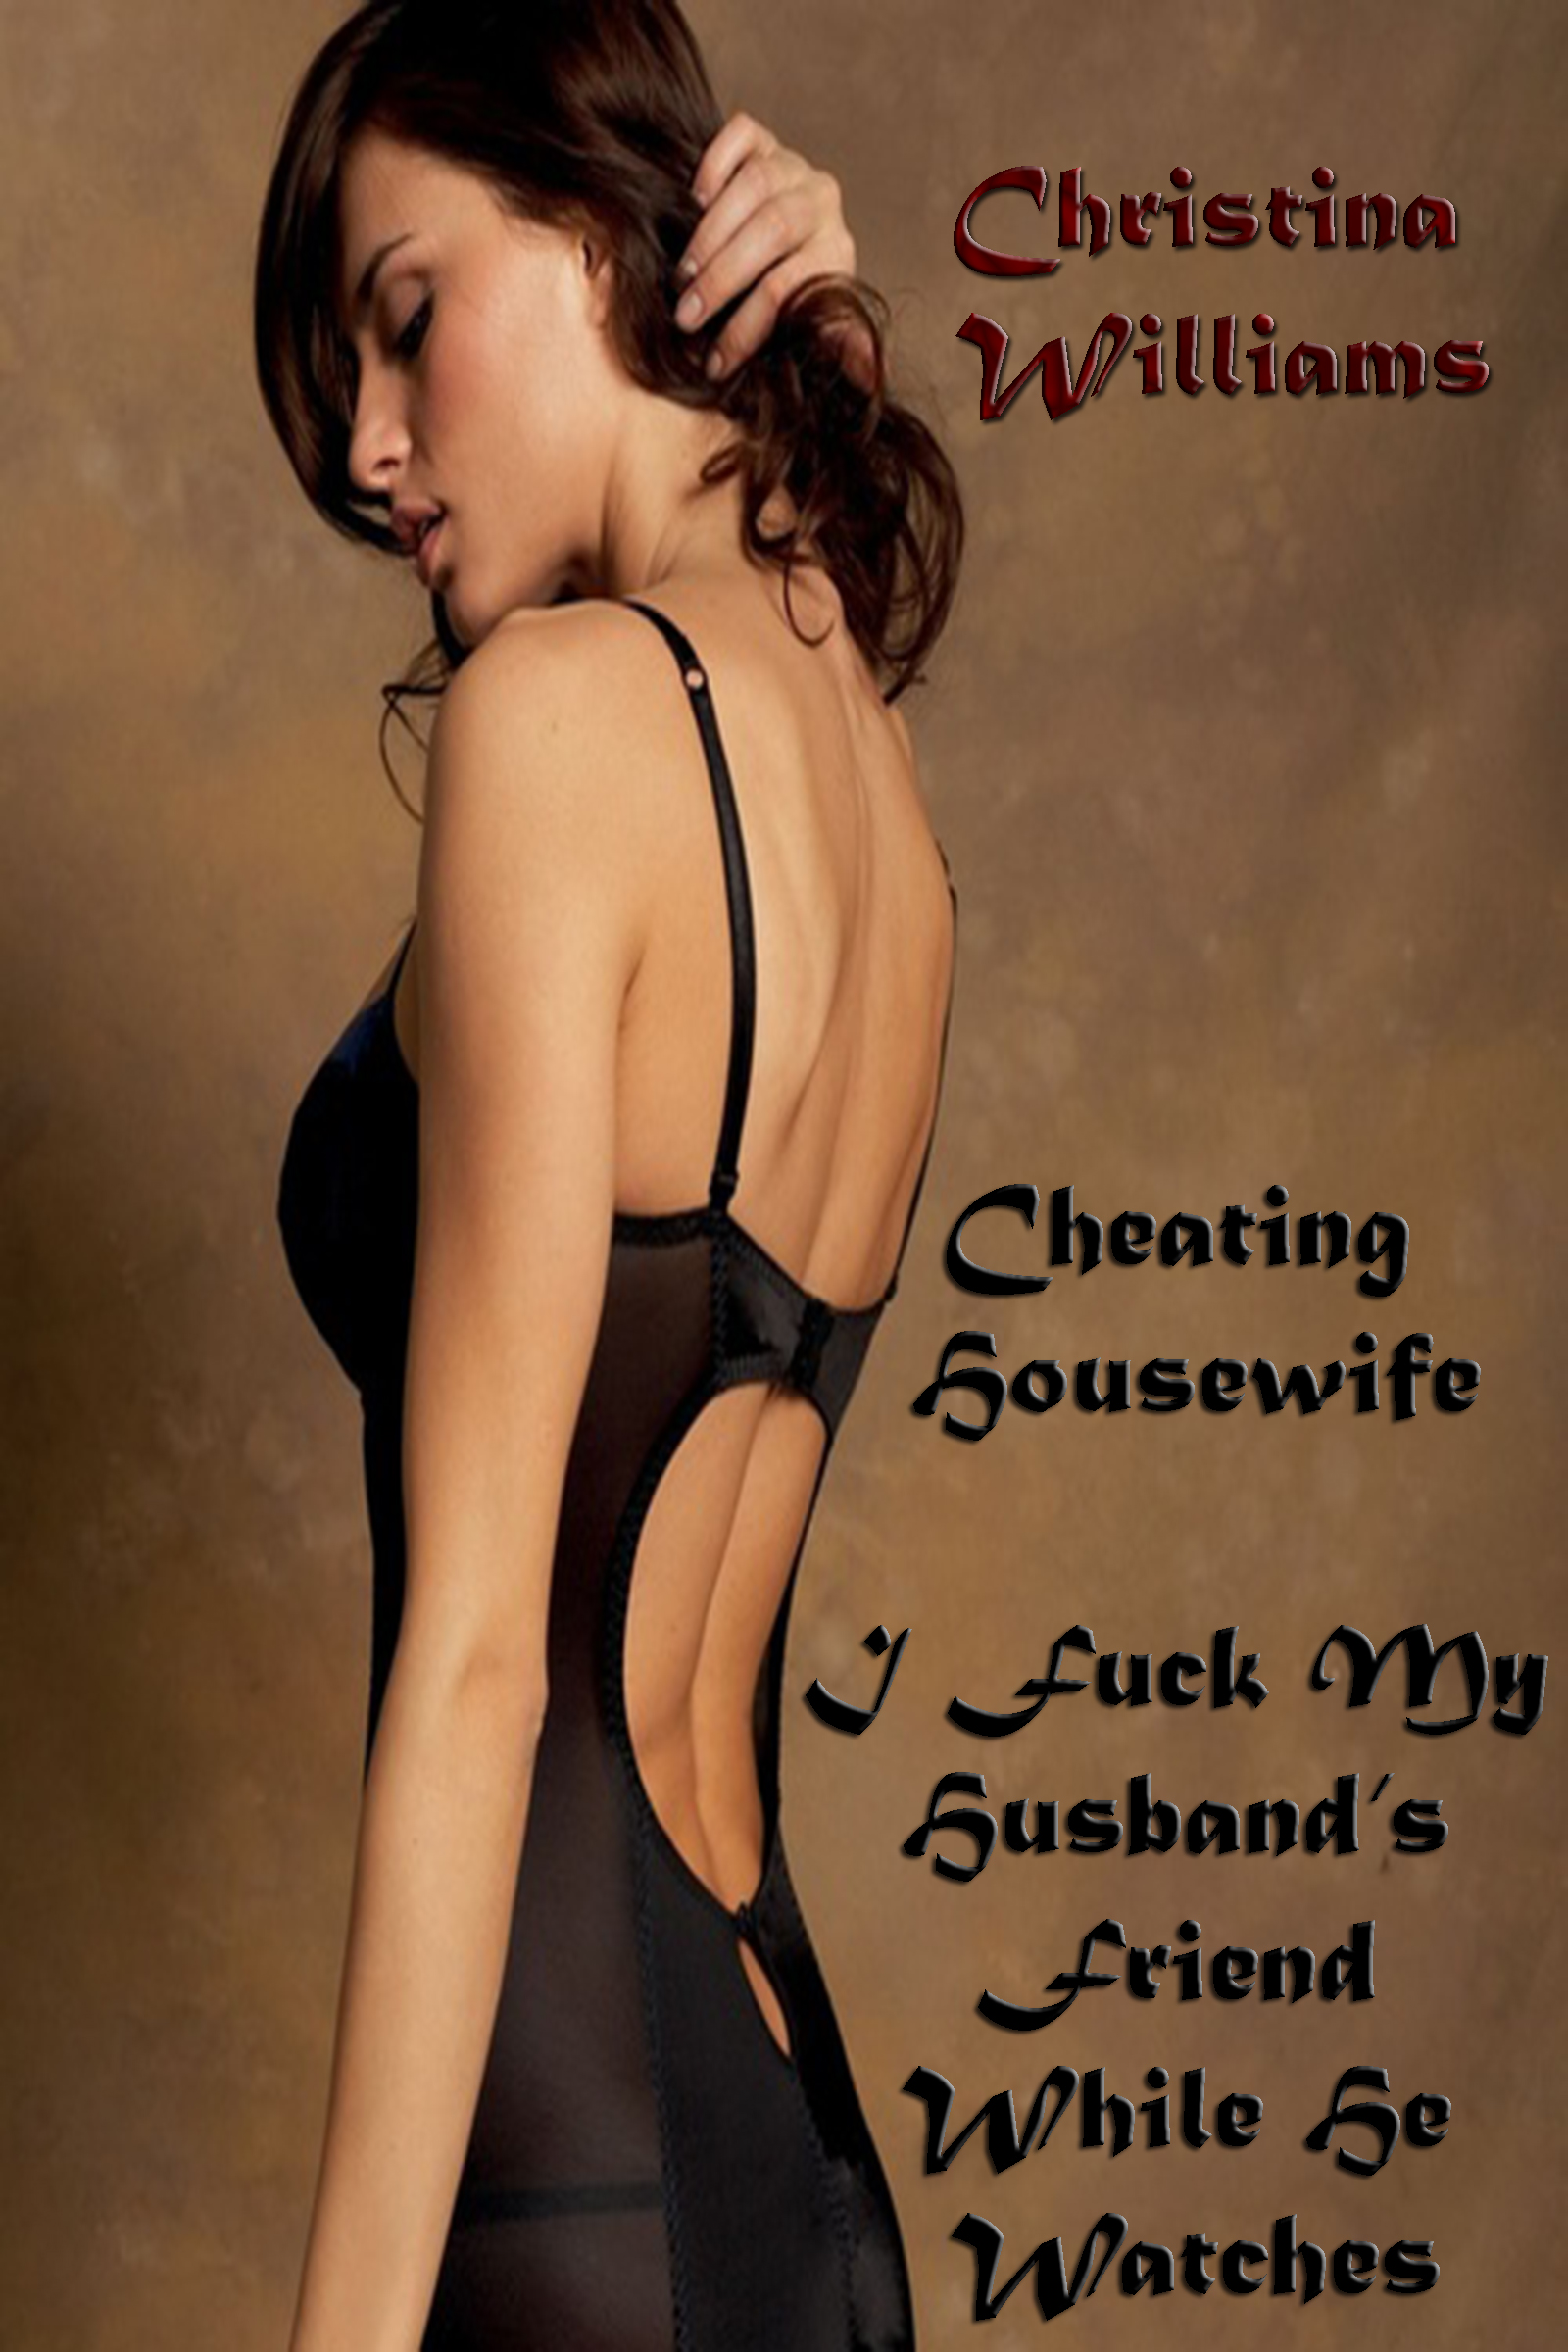 Cheating Housewife I Fuck My Husband?s Friend While He Watches